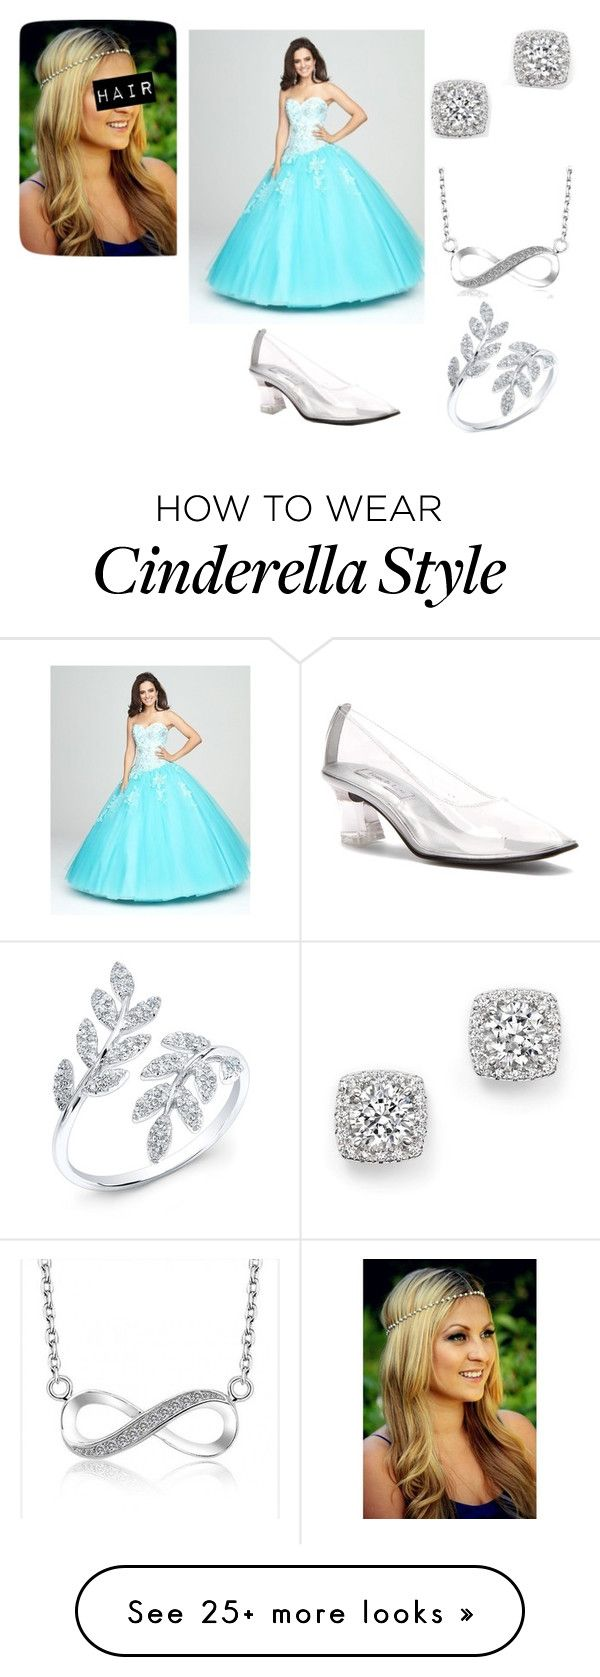 """You should feel like a princess everyday."" by amybeliebs on Polyvore featuring Touch Ups, Bloomingdale's, women's clothing, women's fashion, women, female, woman, misses and juniors"